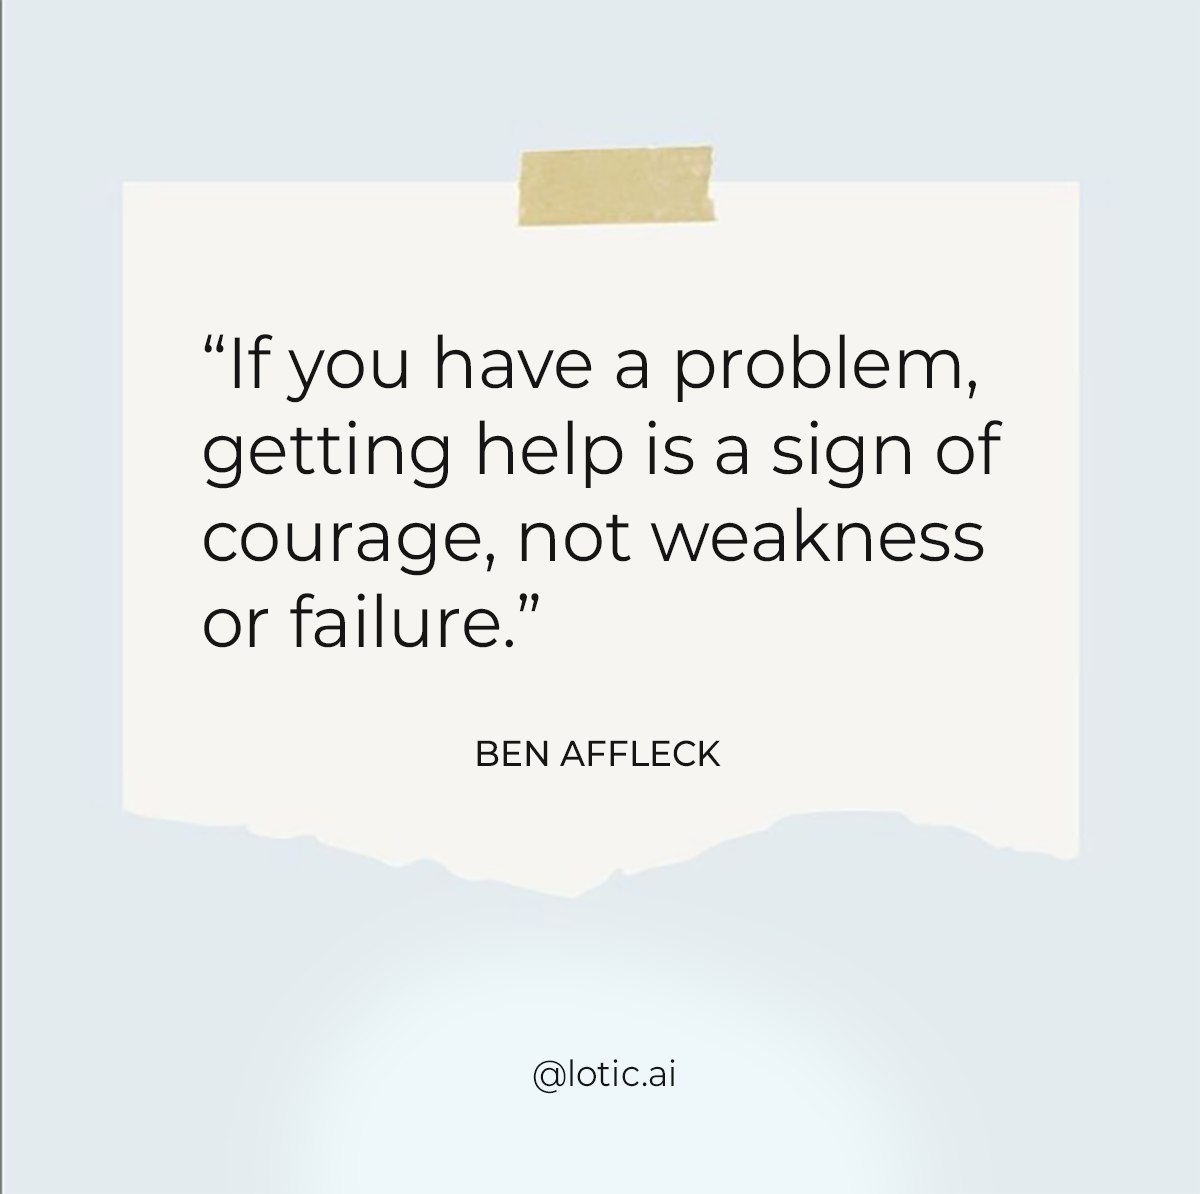 [Image] Don't be afraid to ask for help.